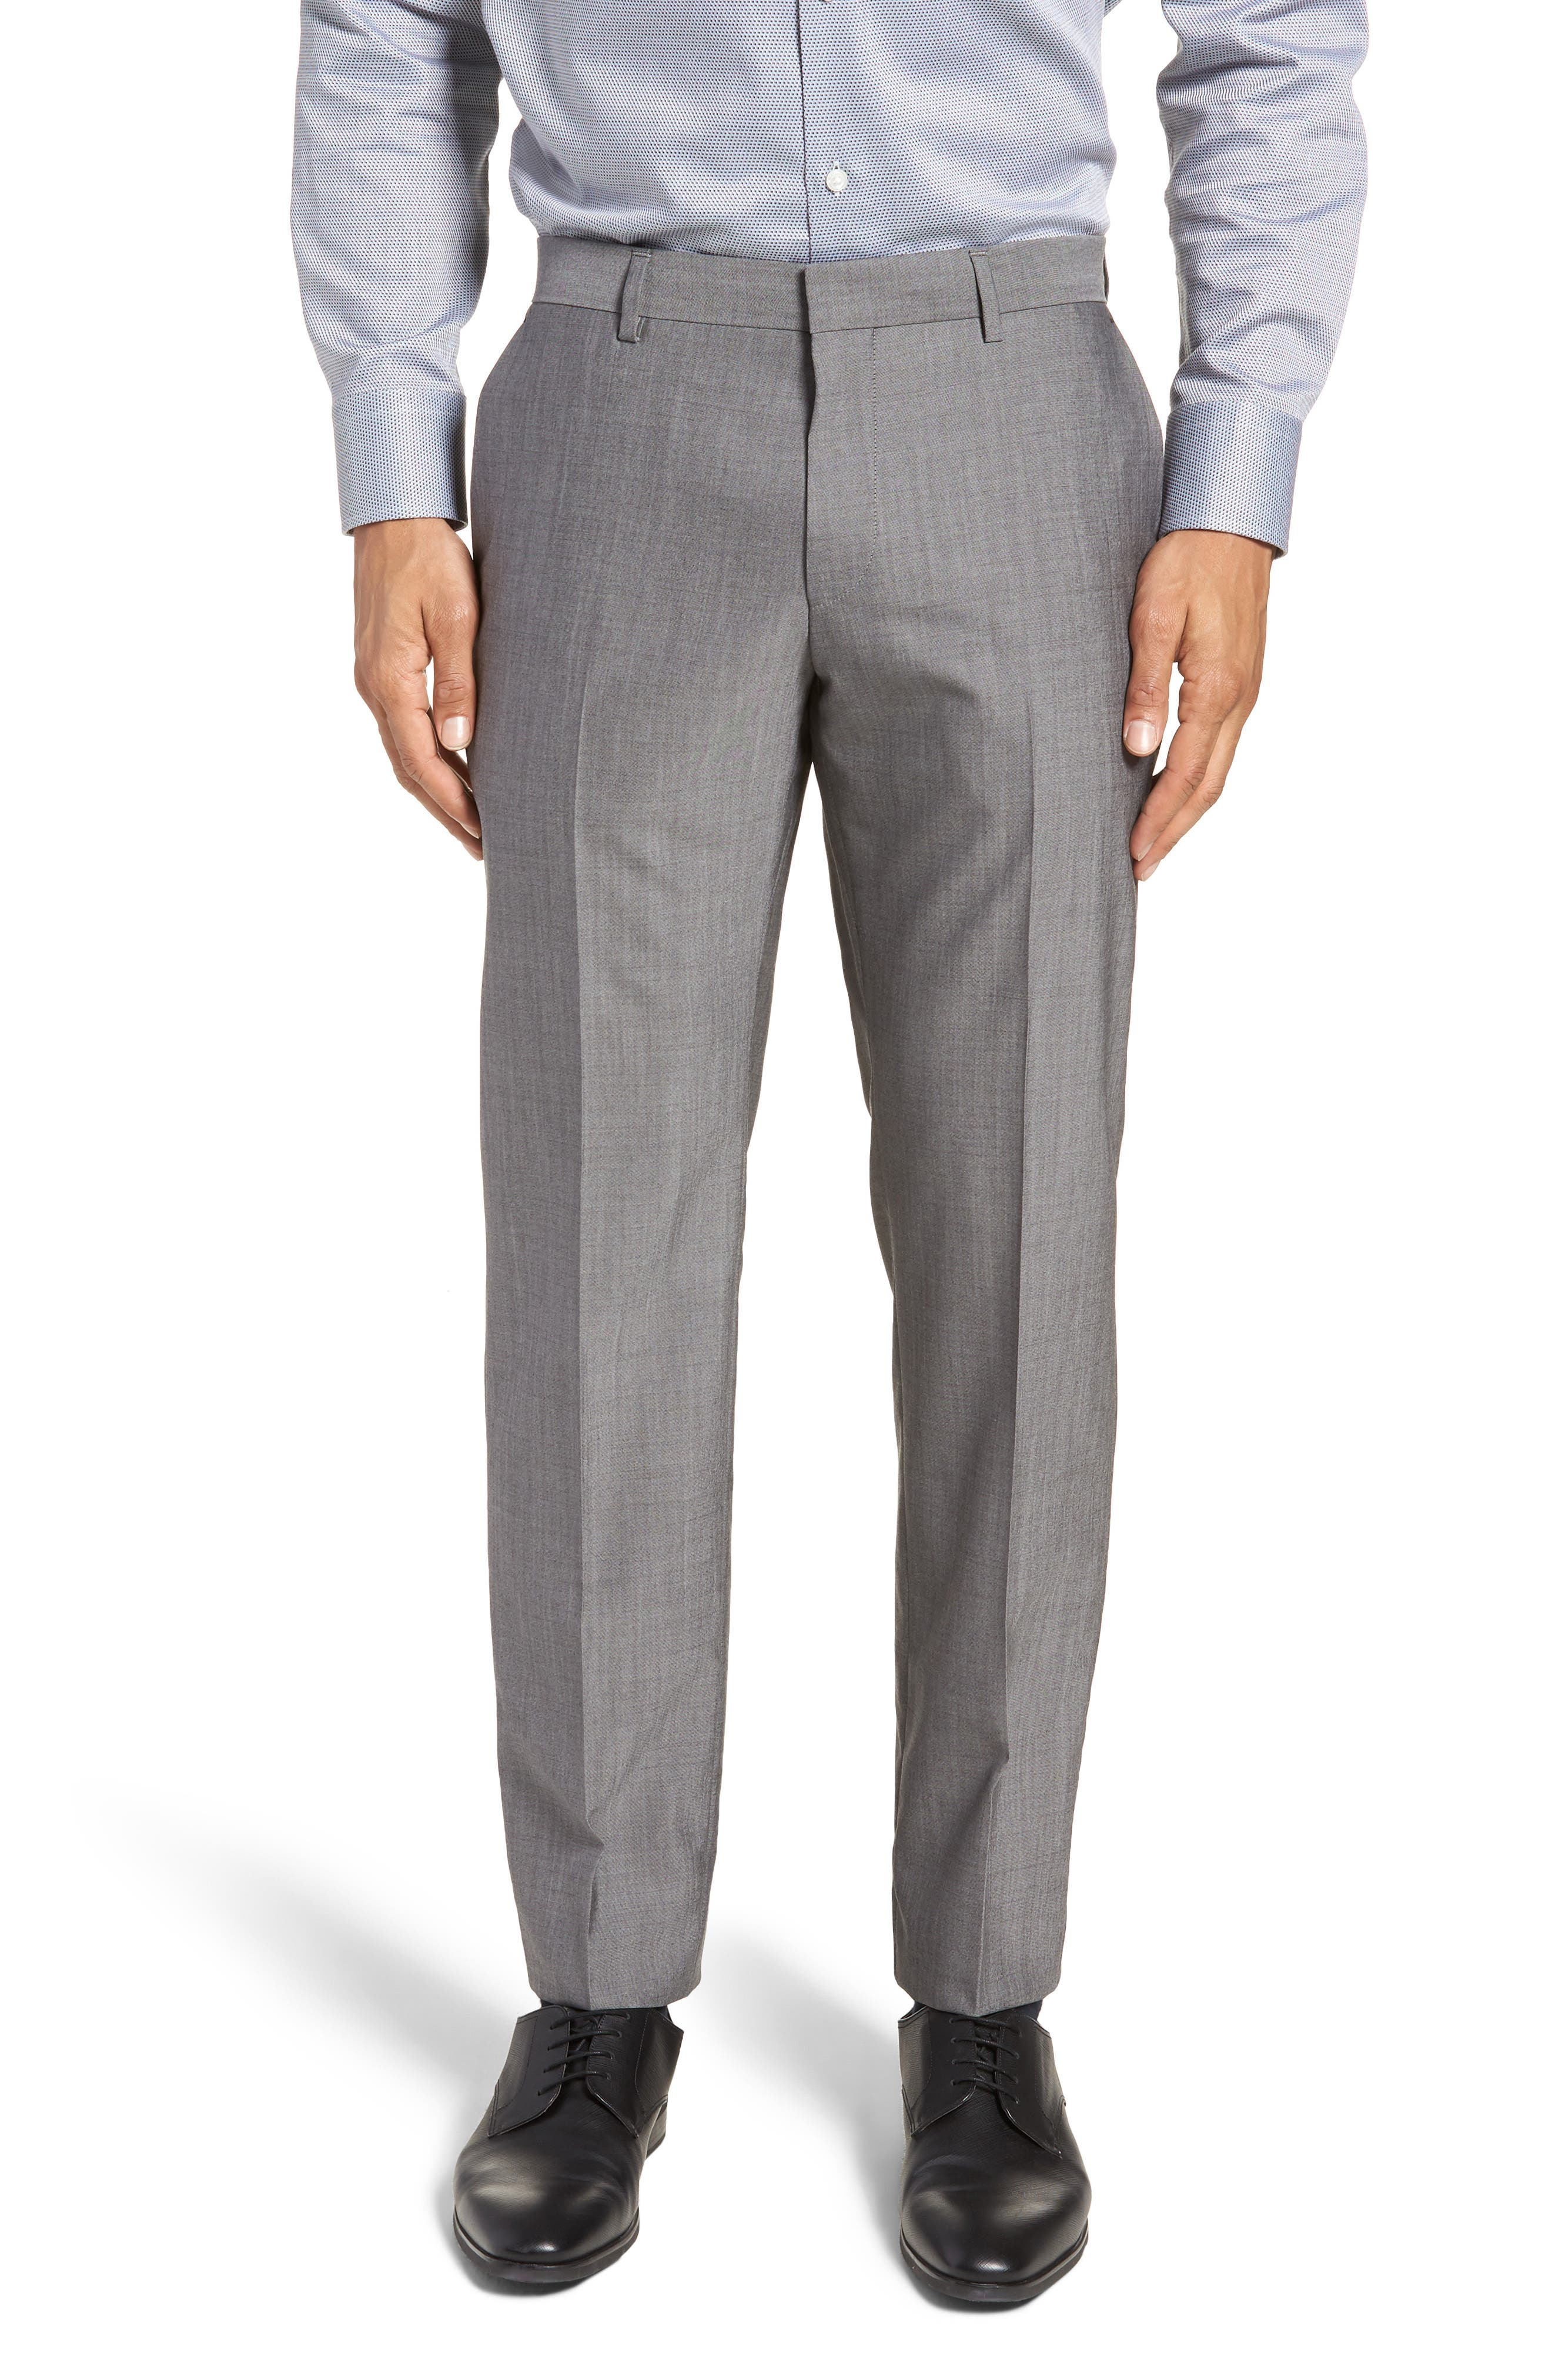 Genesis Flat Front Solid Wool Trousers,                         Main,                         color, GREY